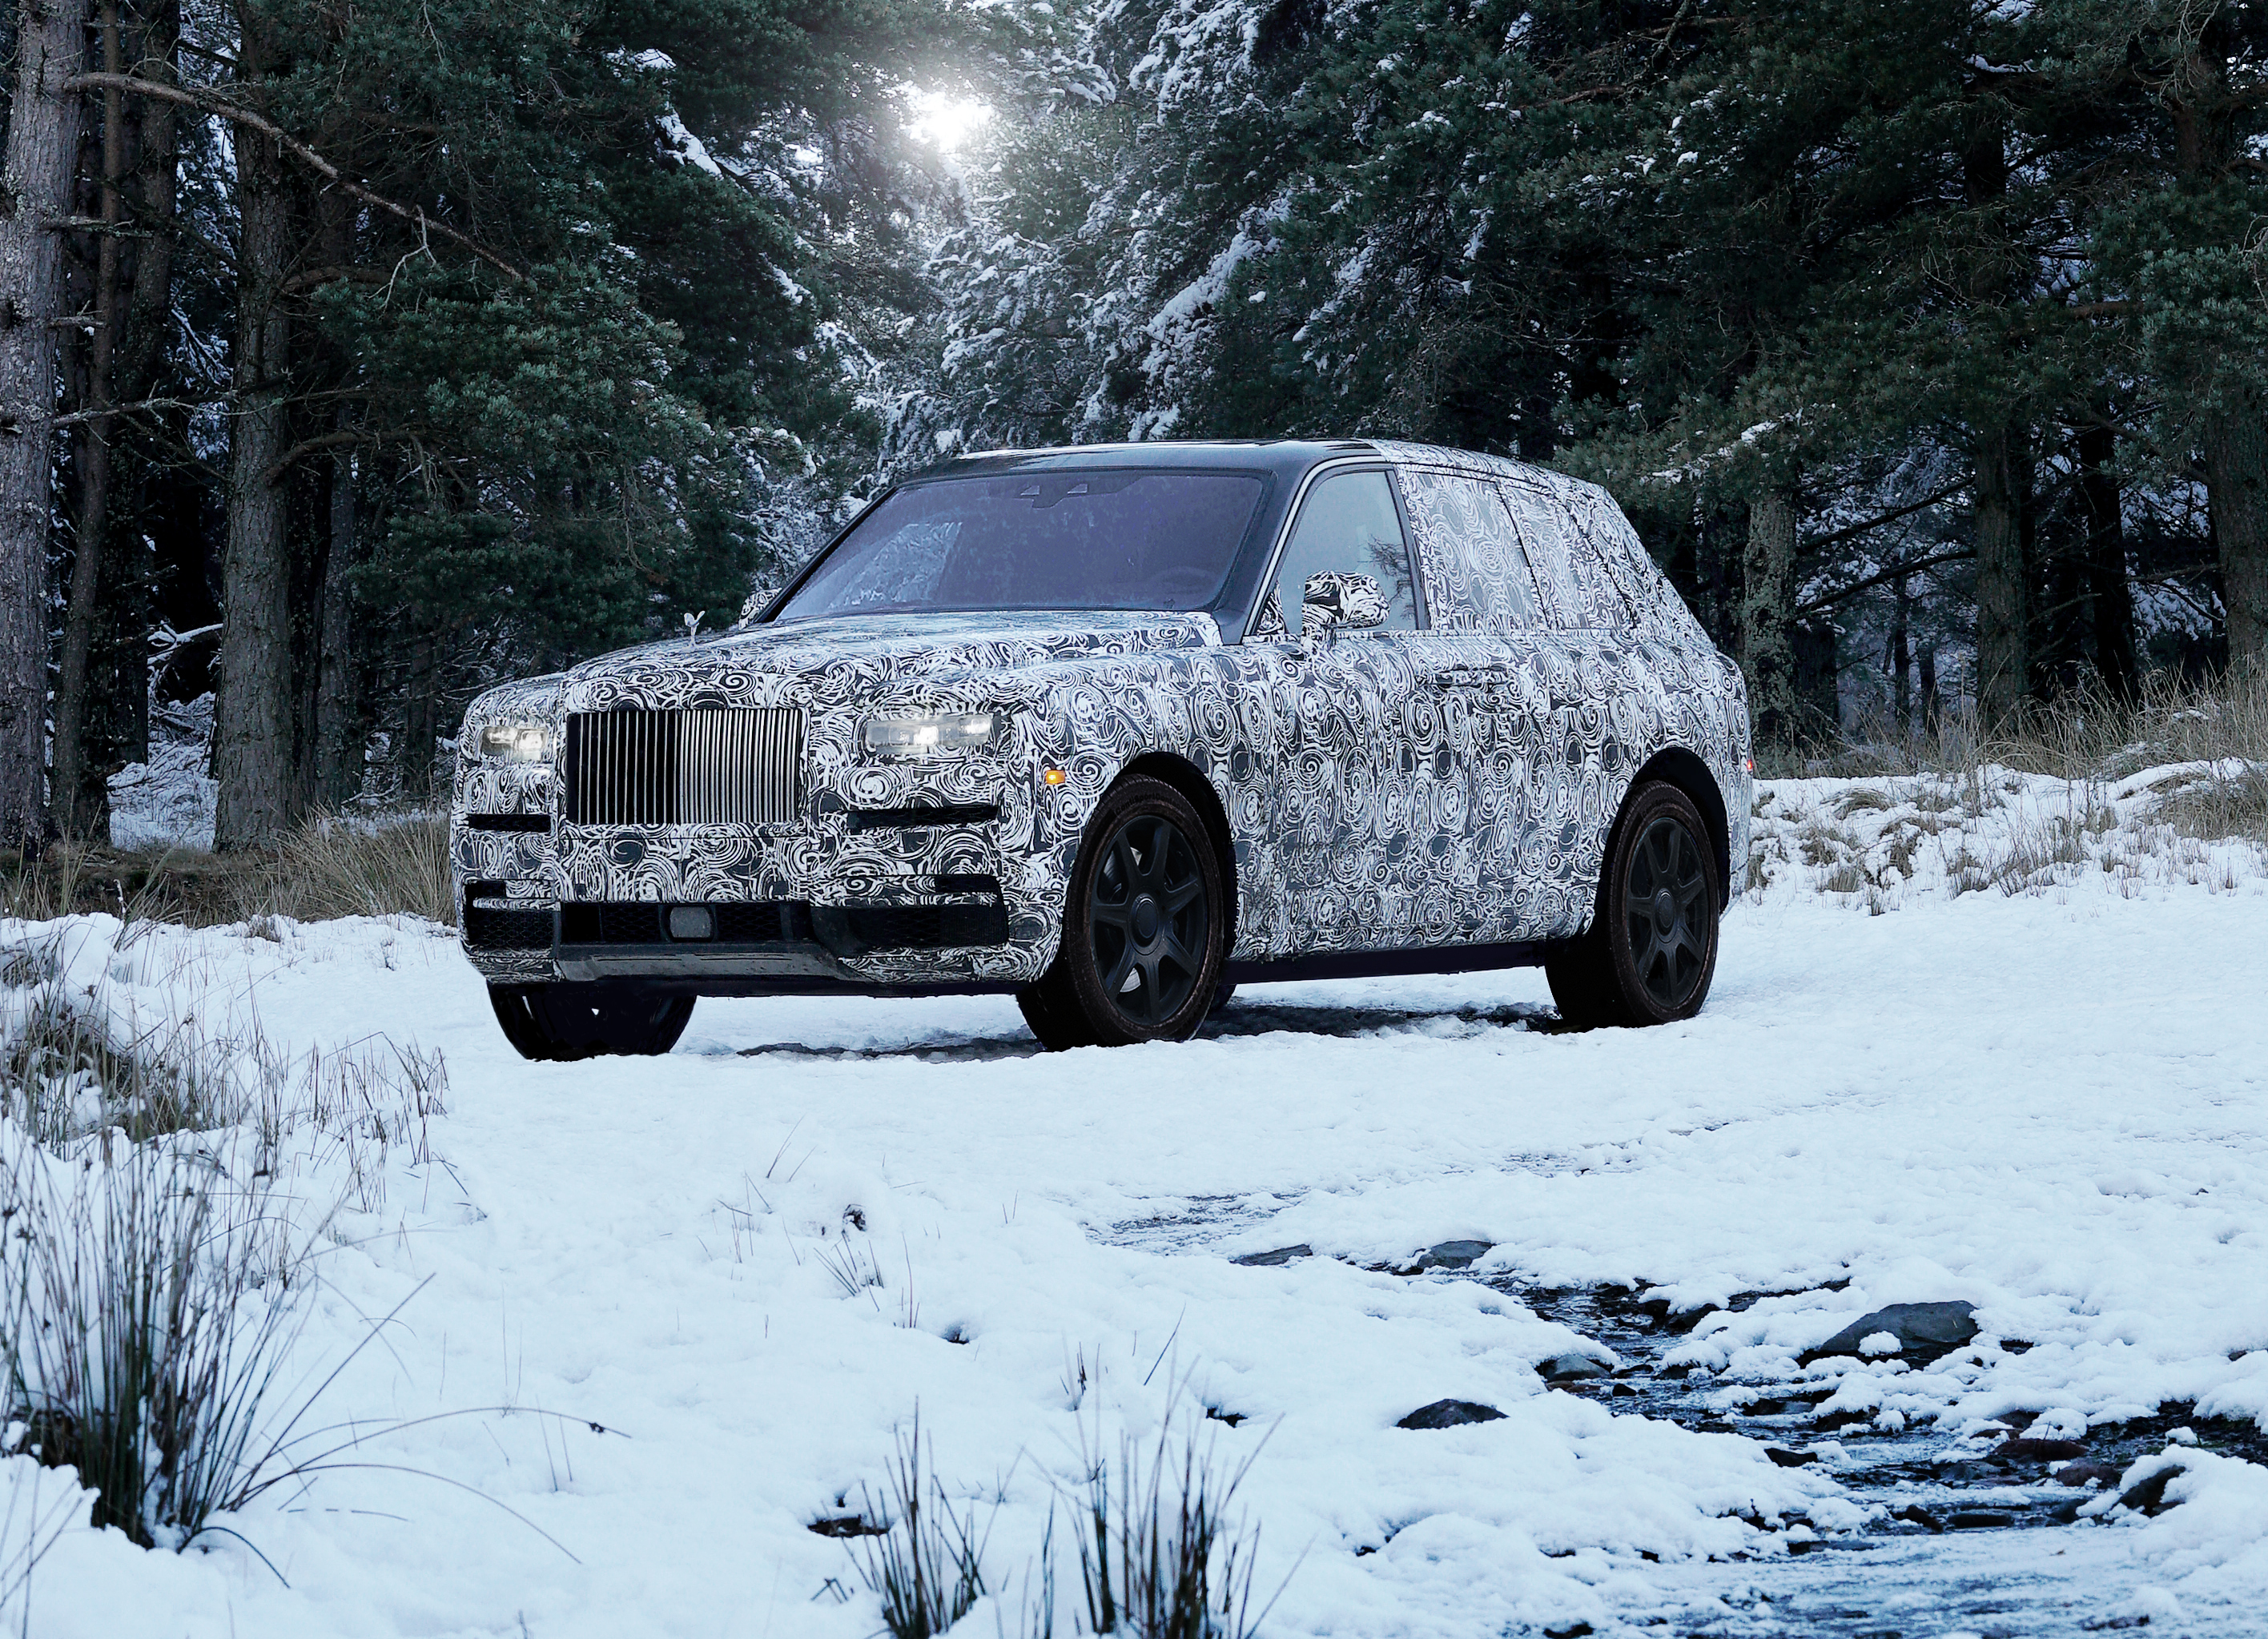 Name of New High-Sided Vehicle to Be Rolls-Royce Cullinan | Business ...